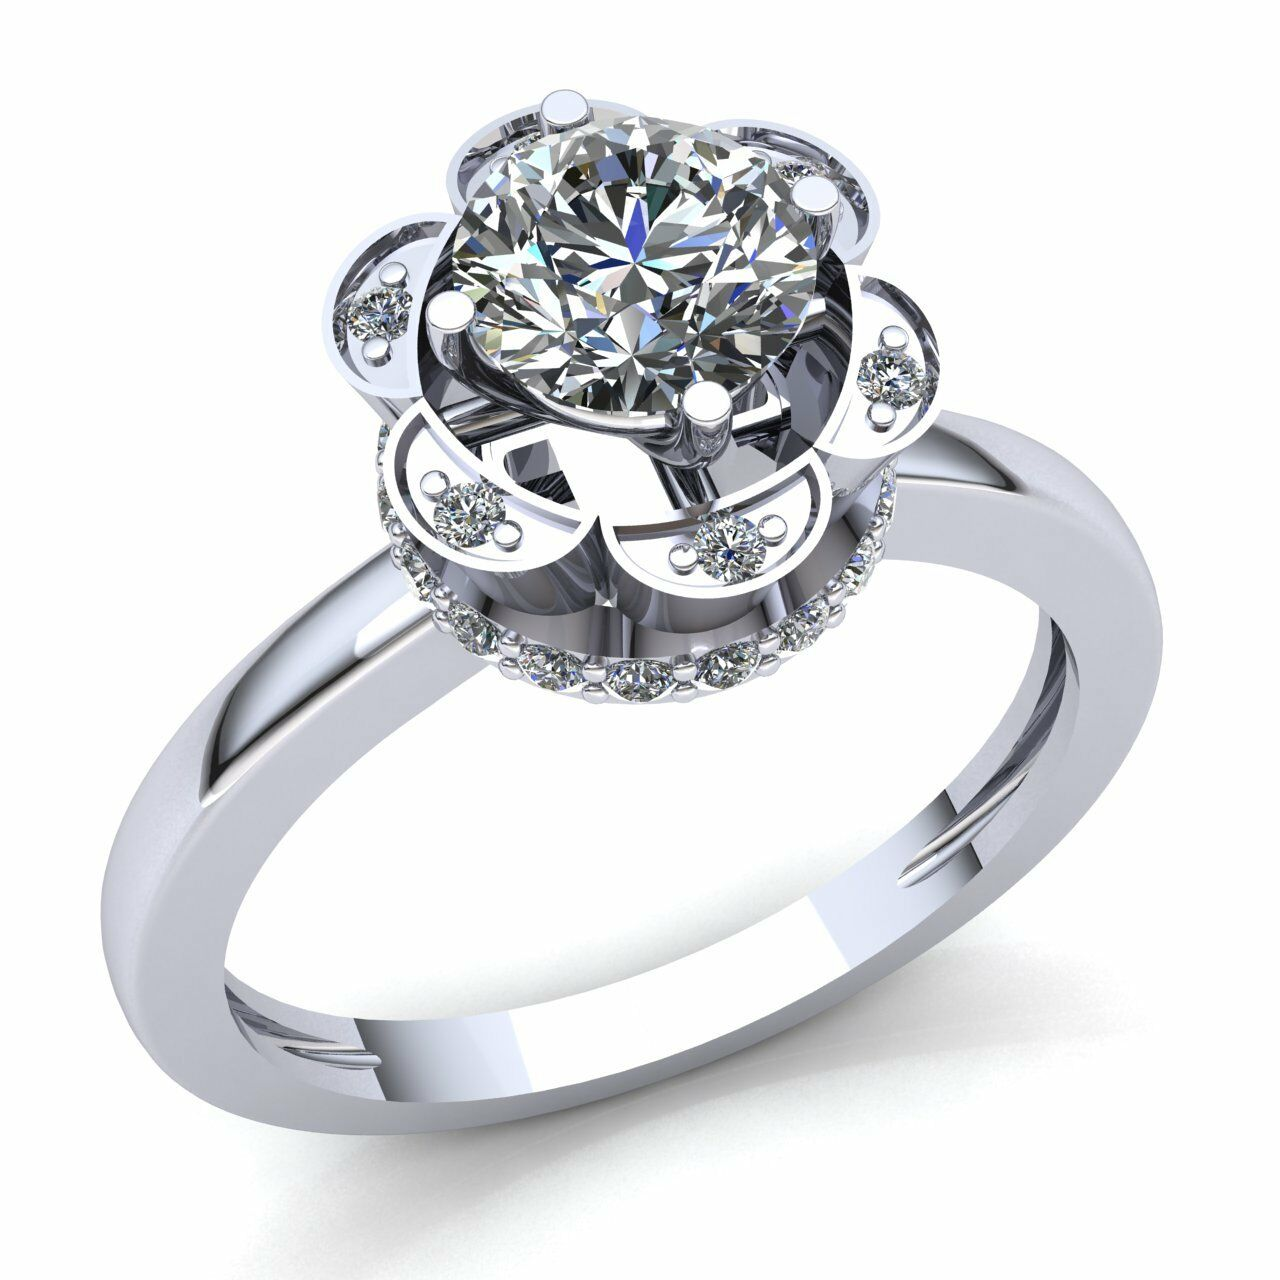 Natural 1ct Round Cut Diamond Ladies Halo Solitaire Engagement Ring 10K gold